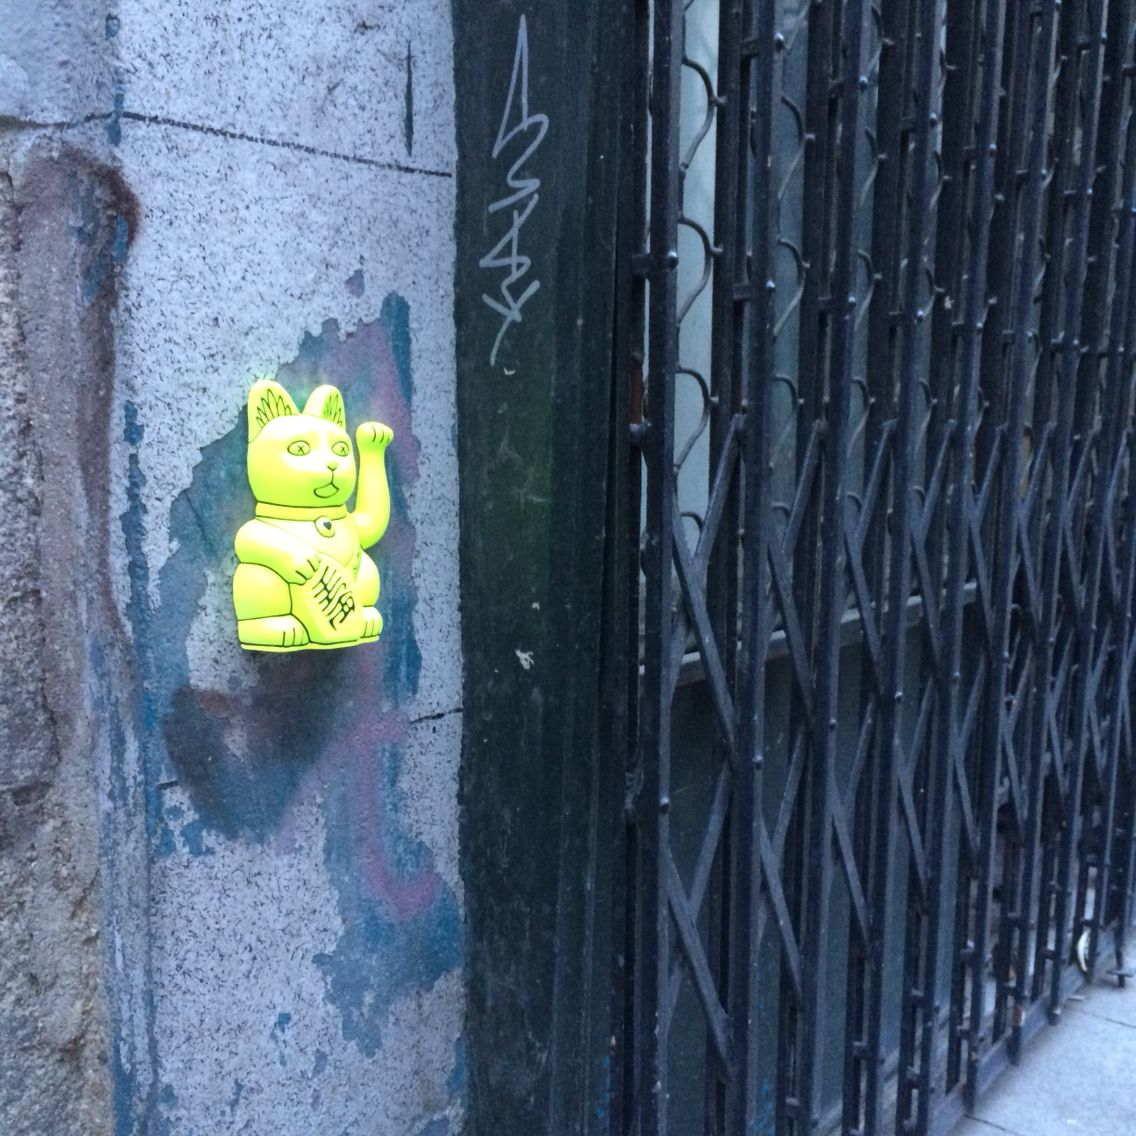 #Madrid - #Spain . srmiau.com  #art #arttoy #popart #arte #artepop #street #streetart #arteurbano #streetnews #streetartanarchy #figure #puertadelsol #wall #urbanart #neko #maneki #luckycat #manekineko #cats #gatos #españa #elcarmen #sculpture #design #diseño #cool #photo #pic #originalart #original #fluor #flúor #figure #cat #cats #gato #gatodelasuerte #gatos #fortunecat #cool #chic #top #beautiful #color #colorful #yellow